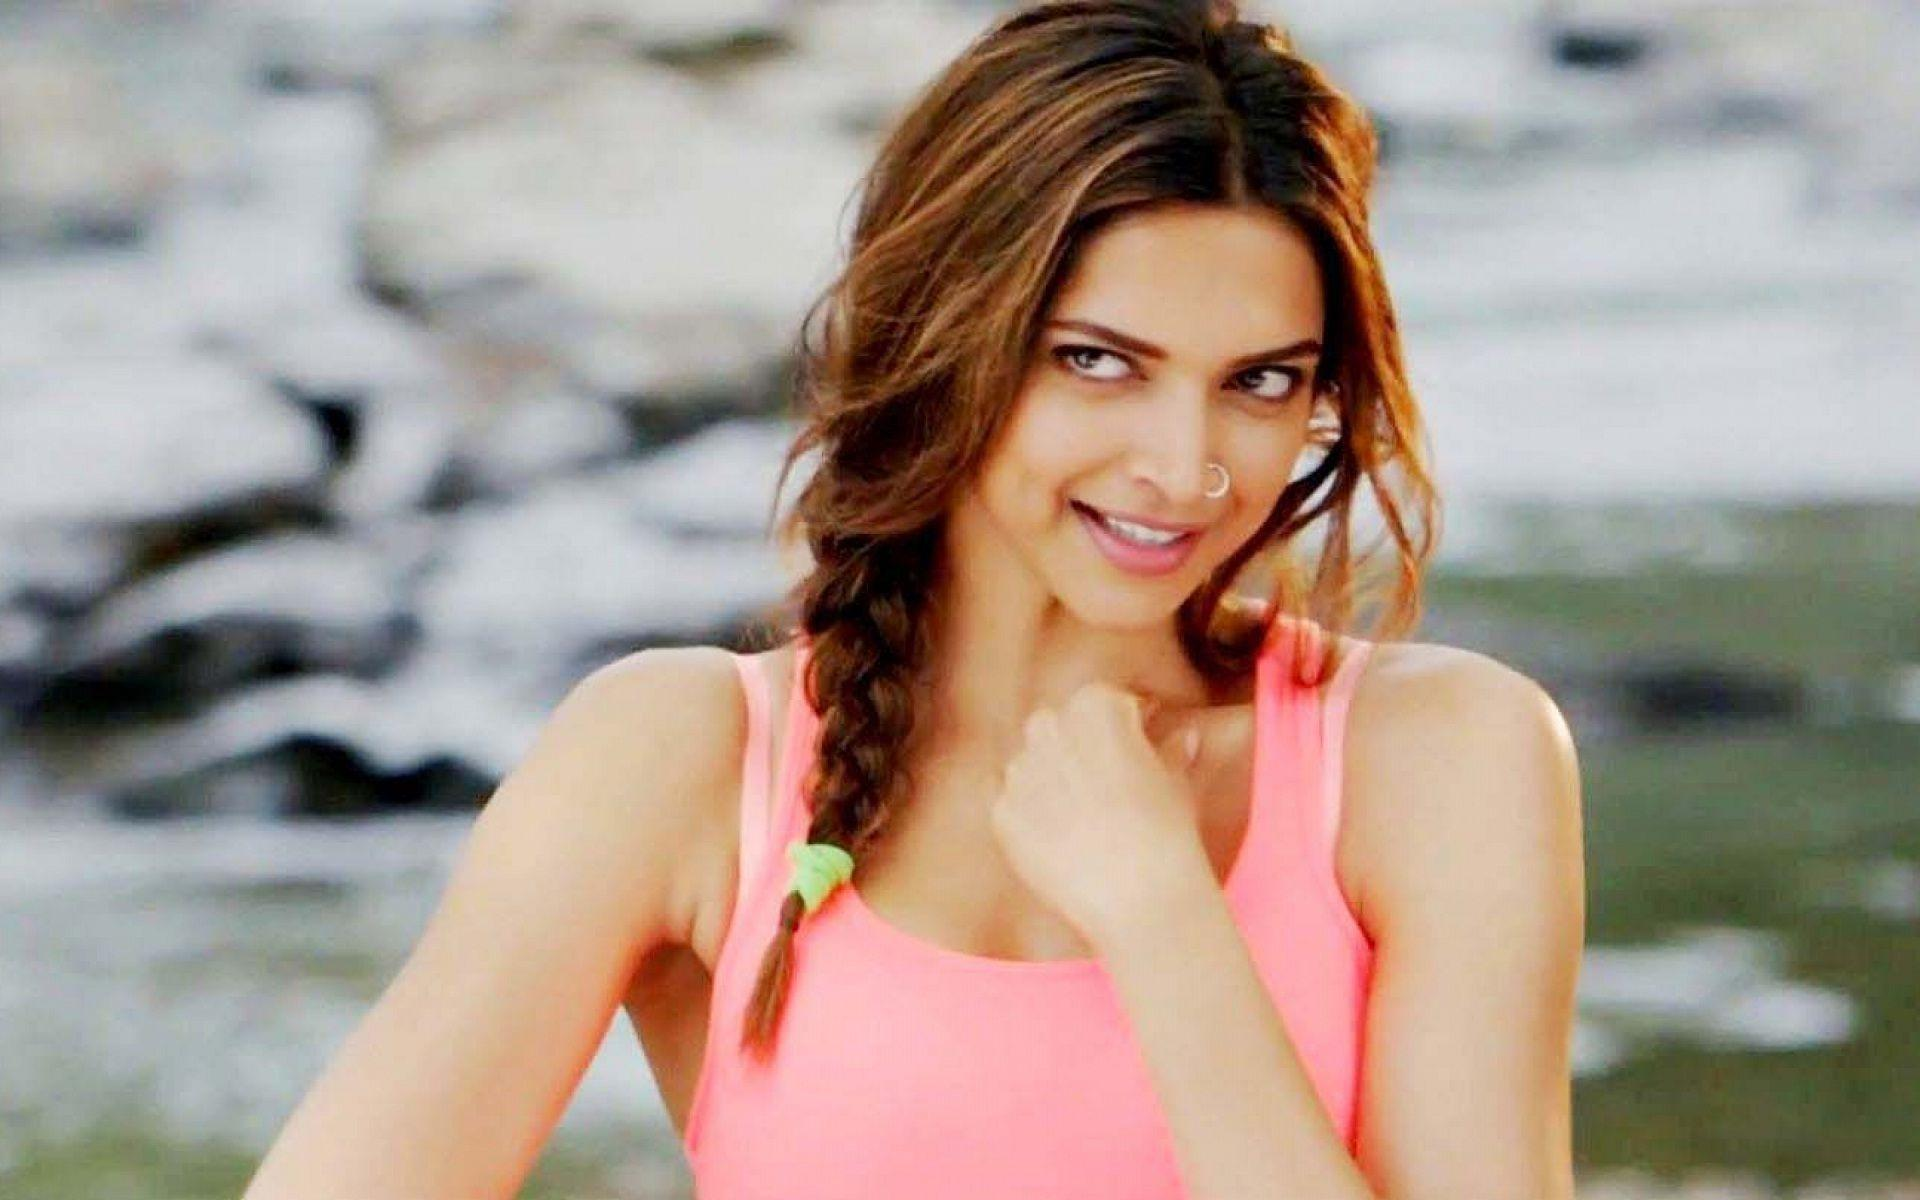 deepika padukone hd wallpapers for mobile - wallpaper cave